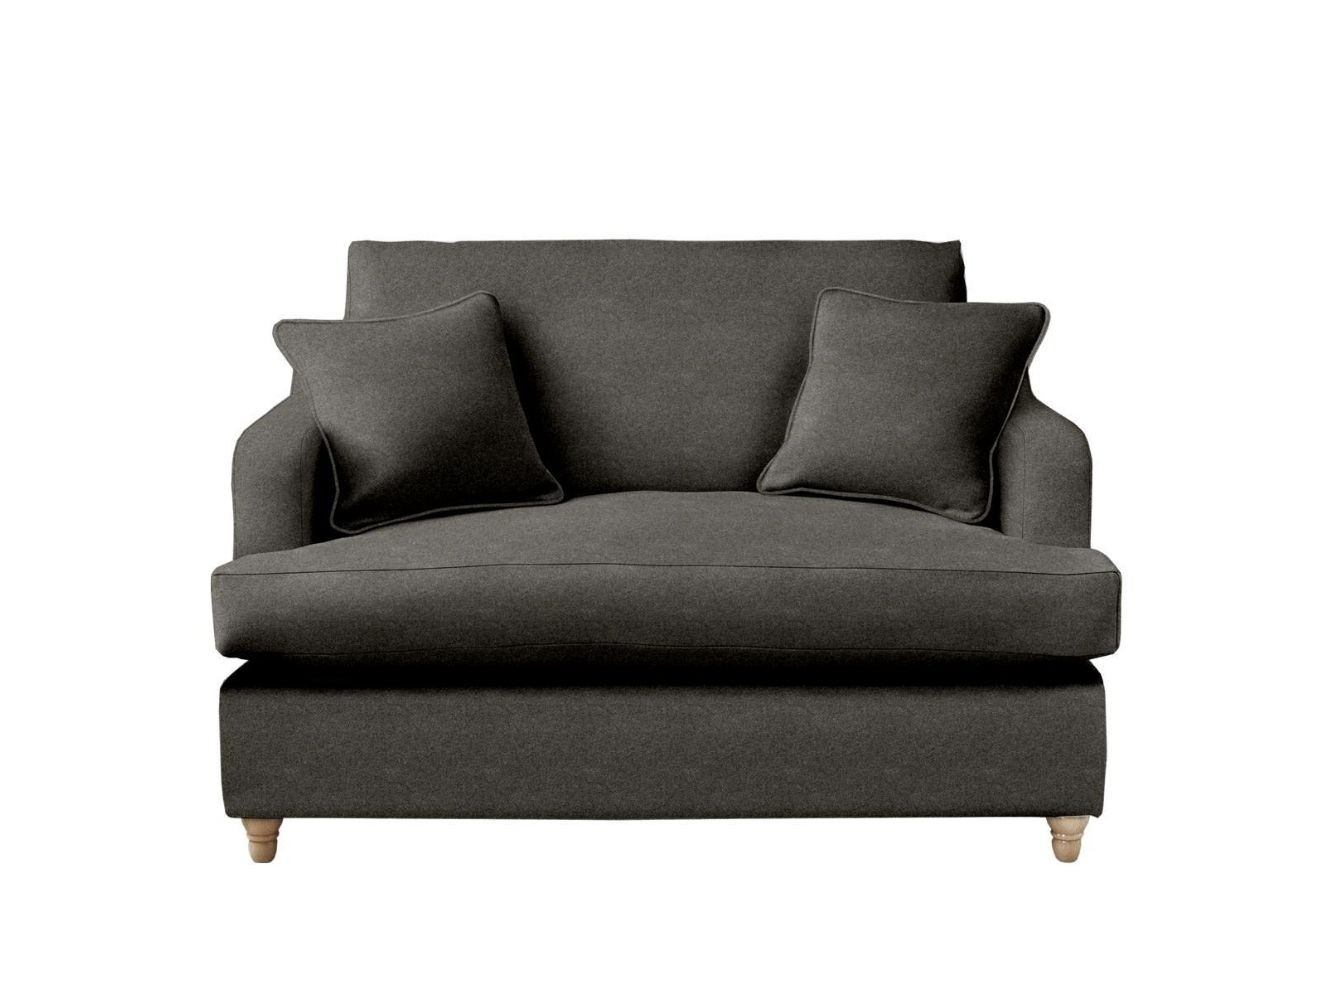 This is how I look in Stain Resistant Wool Charcoal with a feather-wrapped foam seat cushion